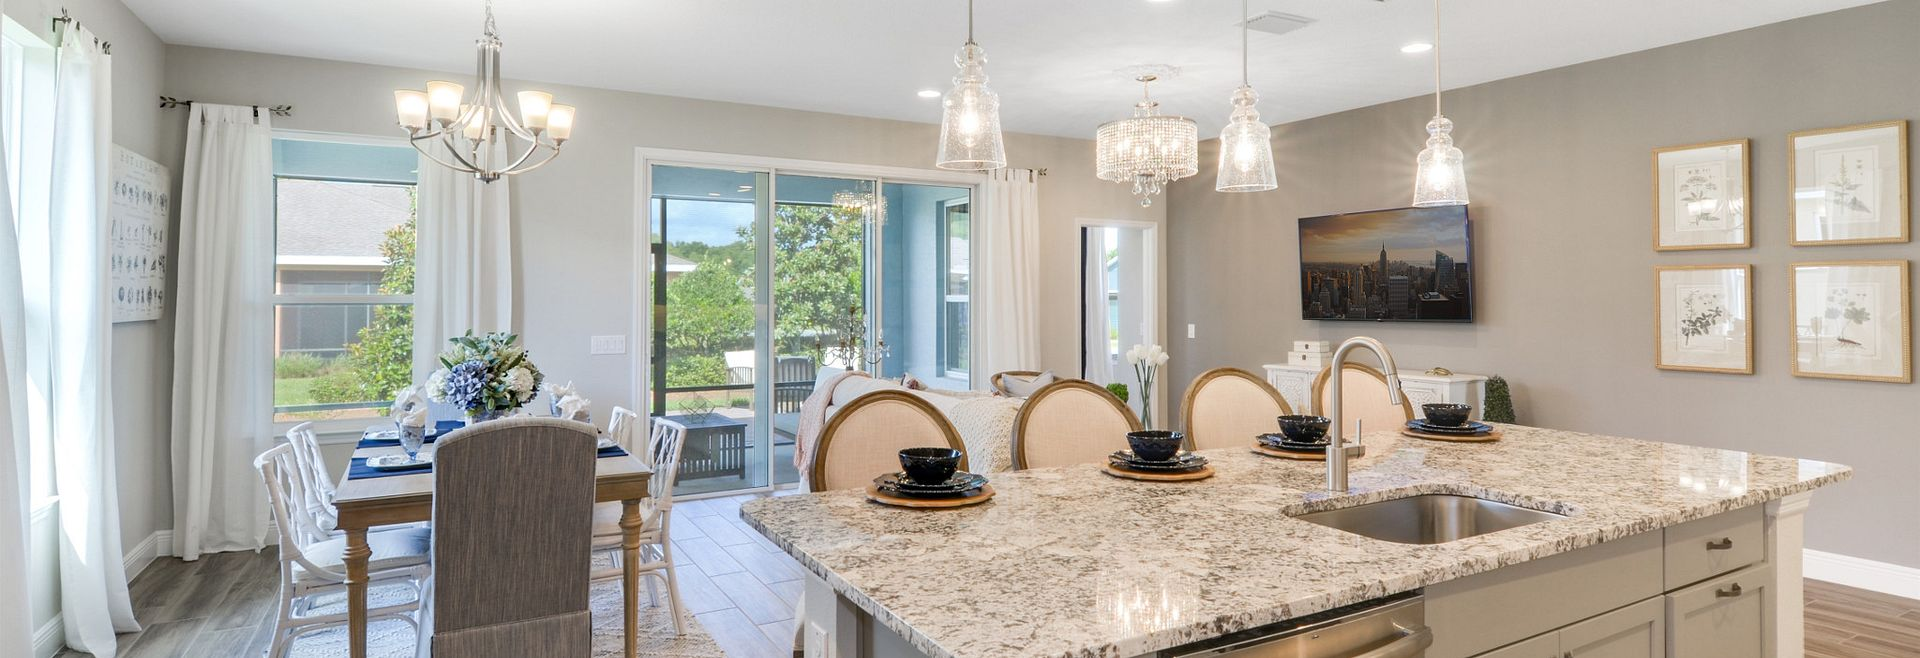 Trilogy at Ocala Preserve Affirm Model Home